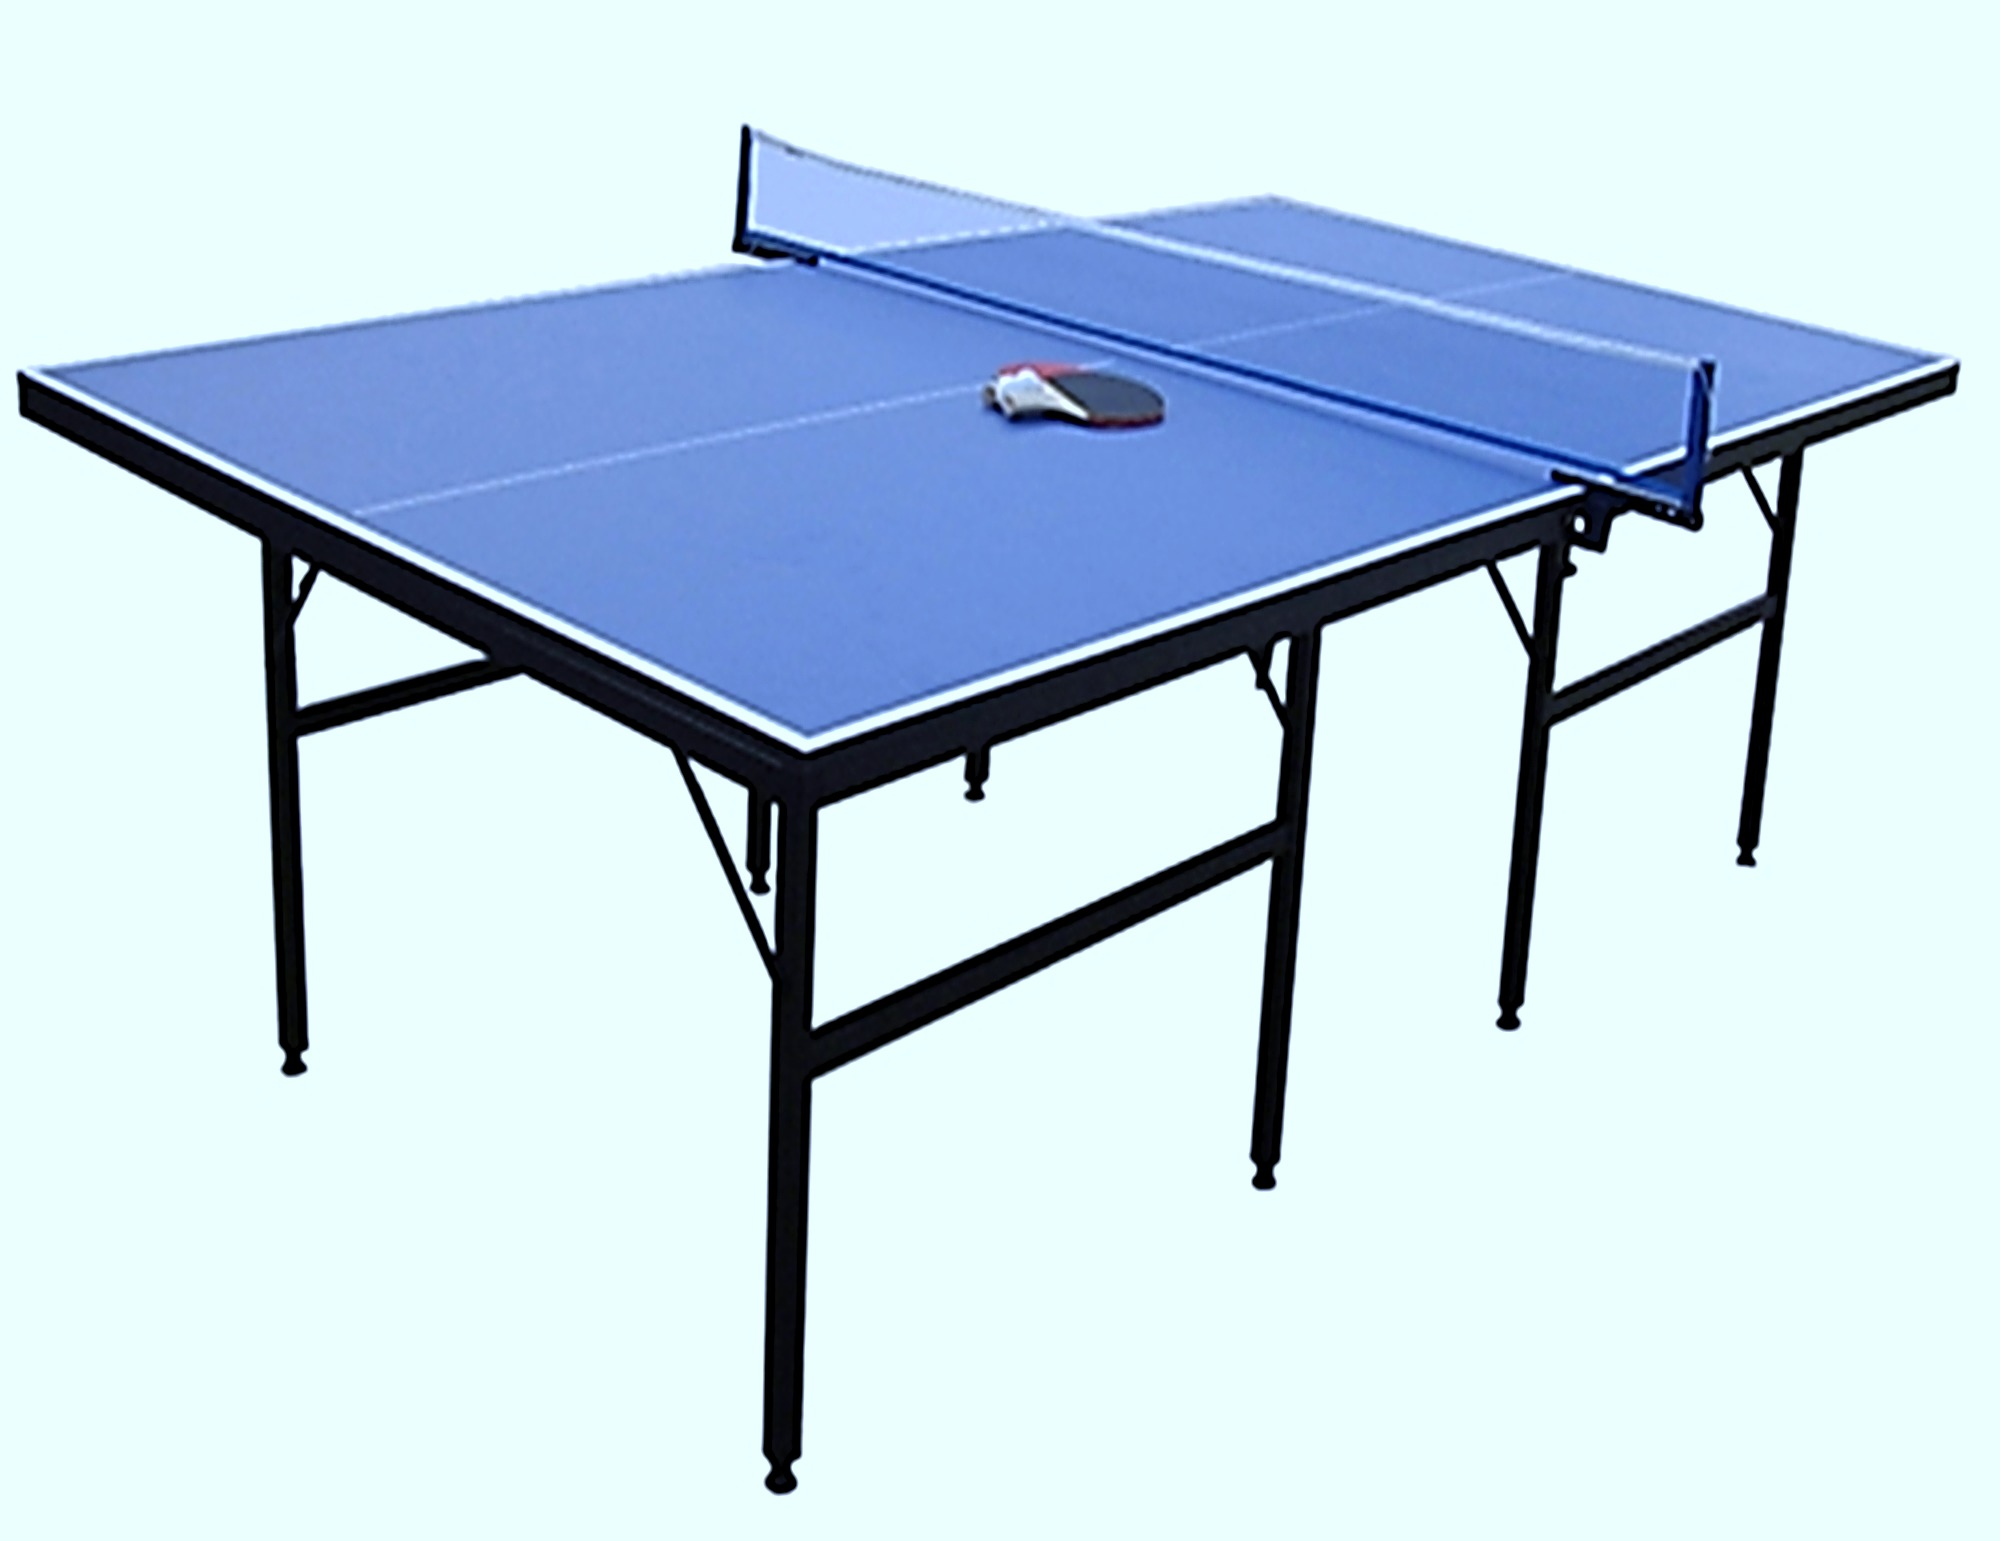 double power sh109 heavy duty pingpong/table tennis table | lazada ph